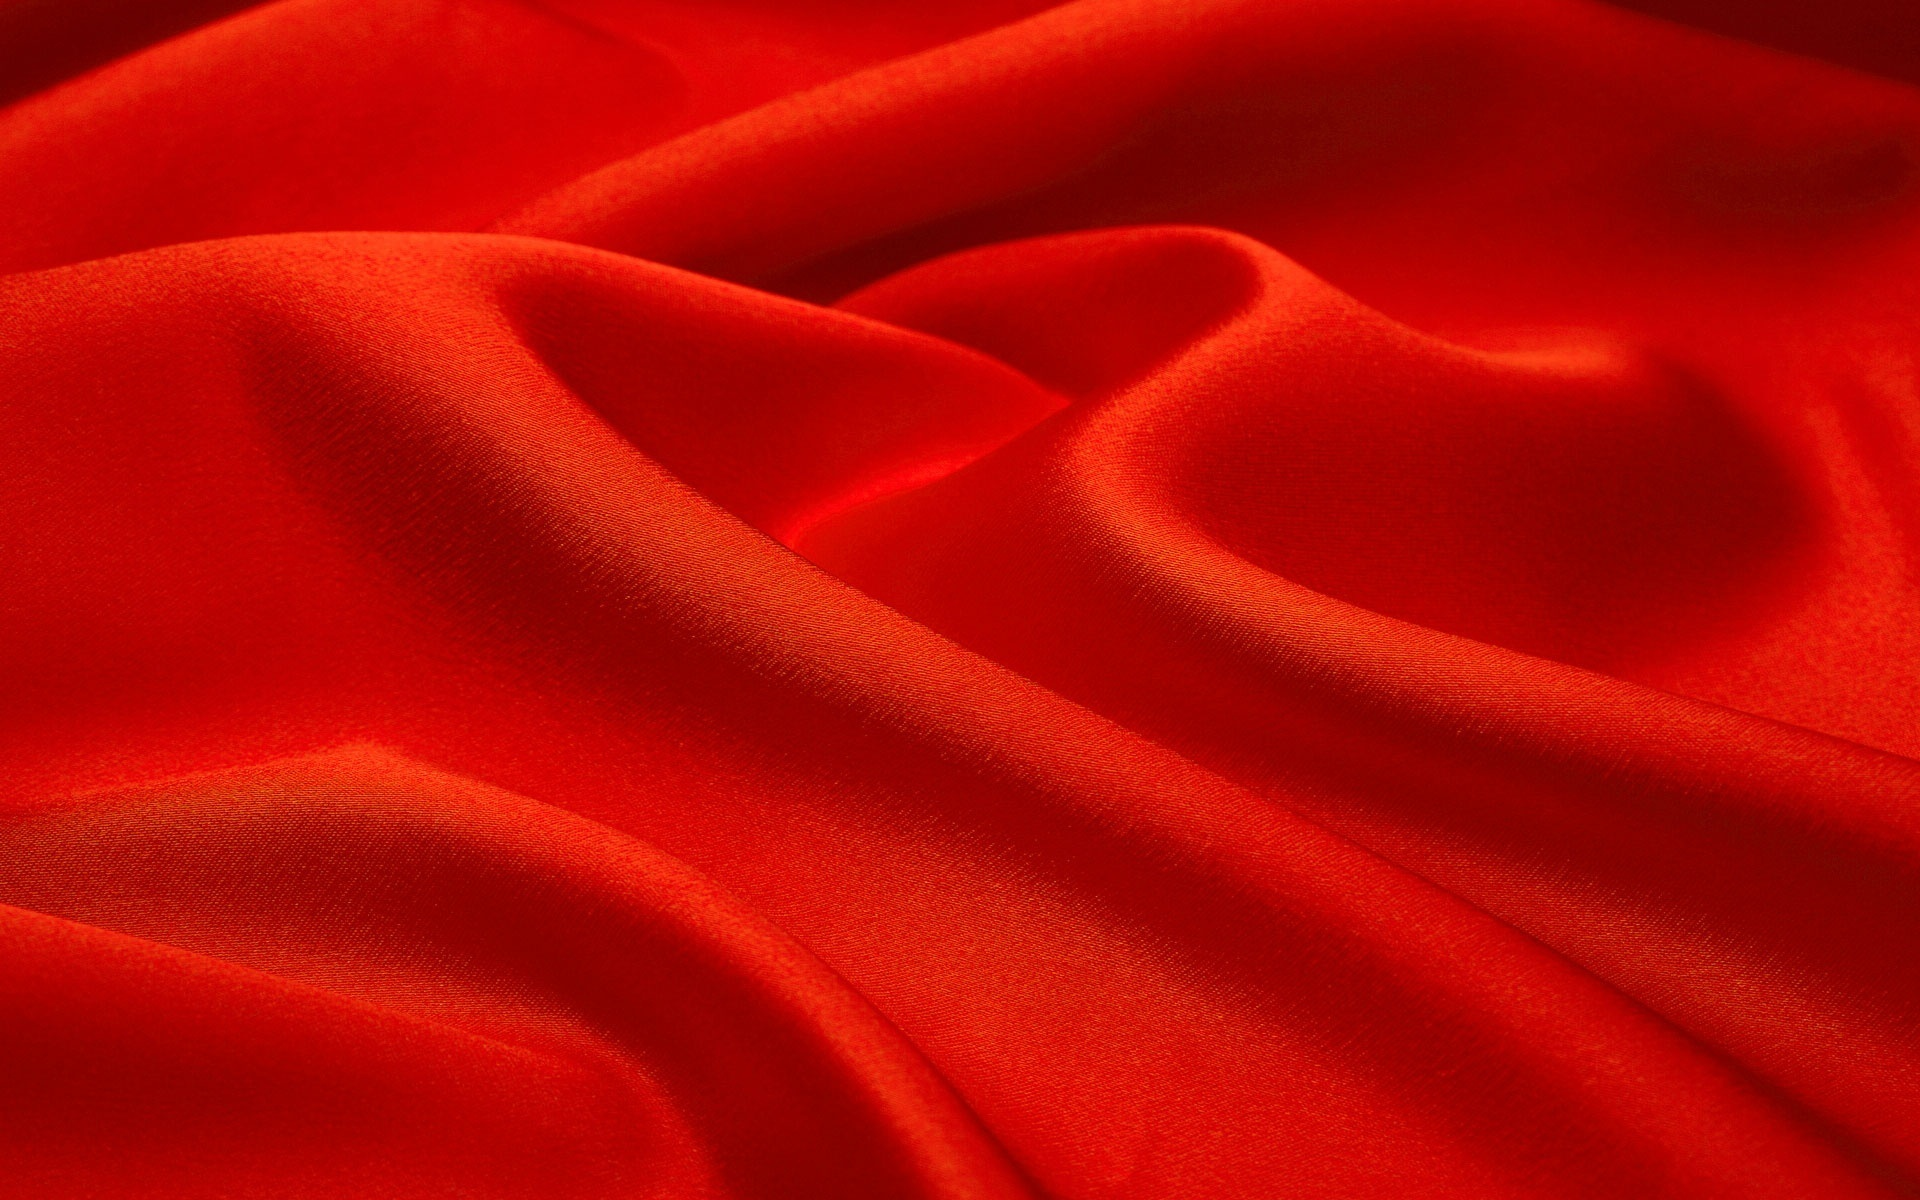 Red cloth tissue texture